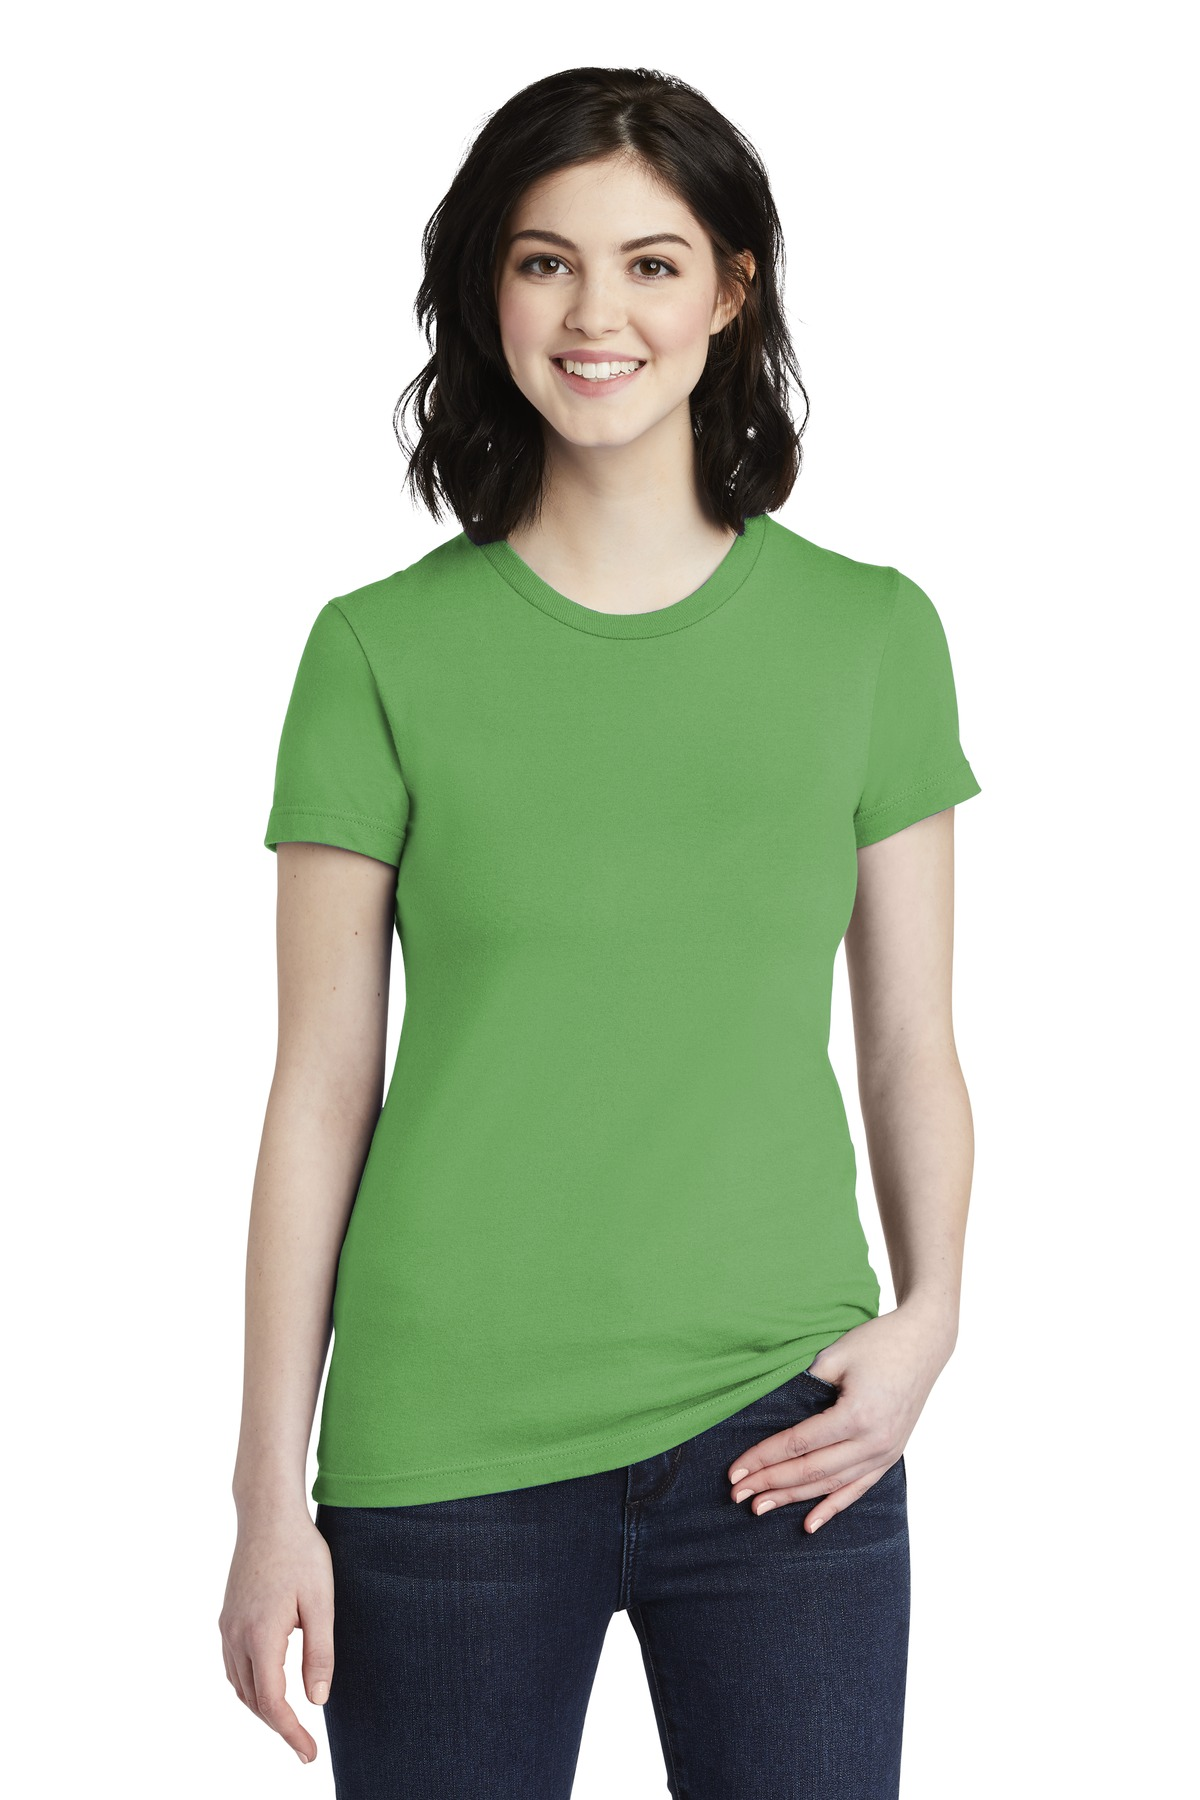 72f59968 American Apparel ® Women's Fine Jersey T-Shirt. 2102W - Apparel ...